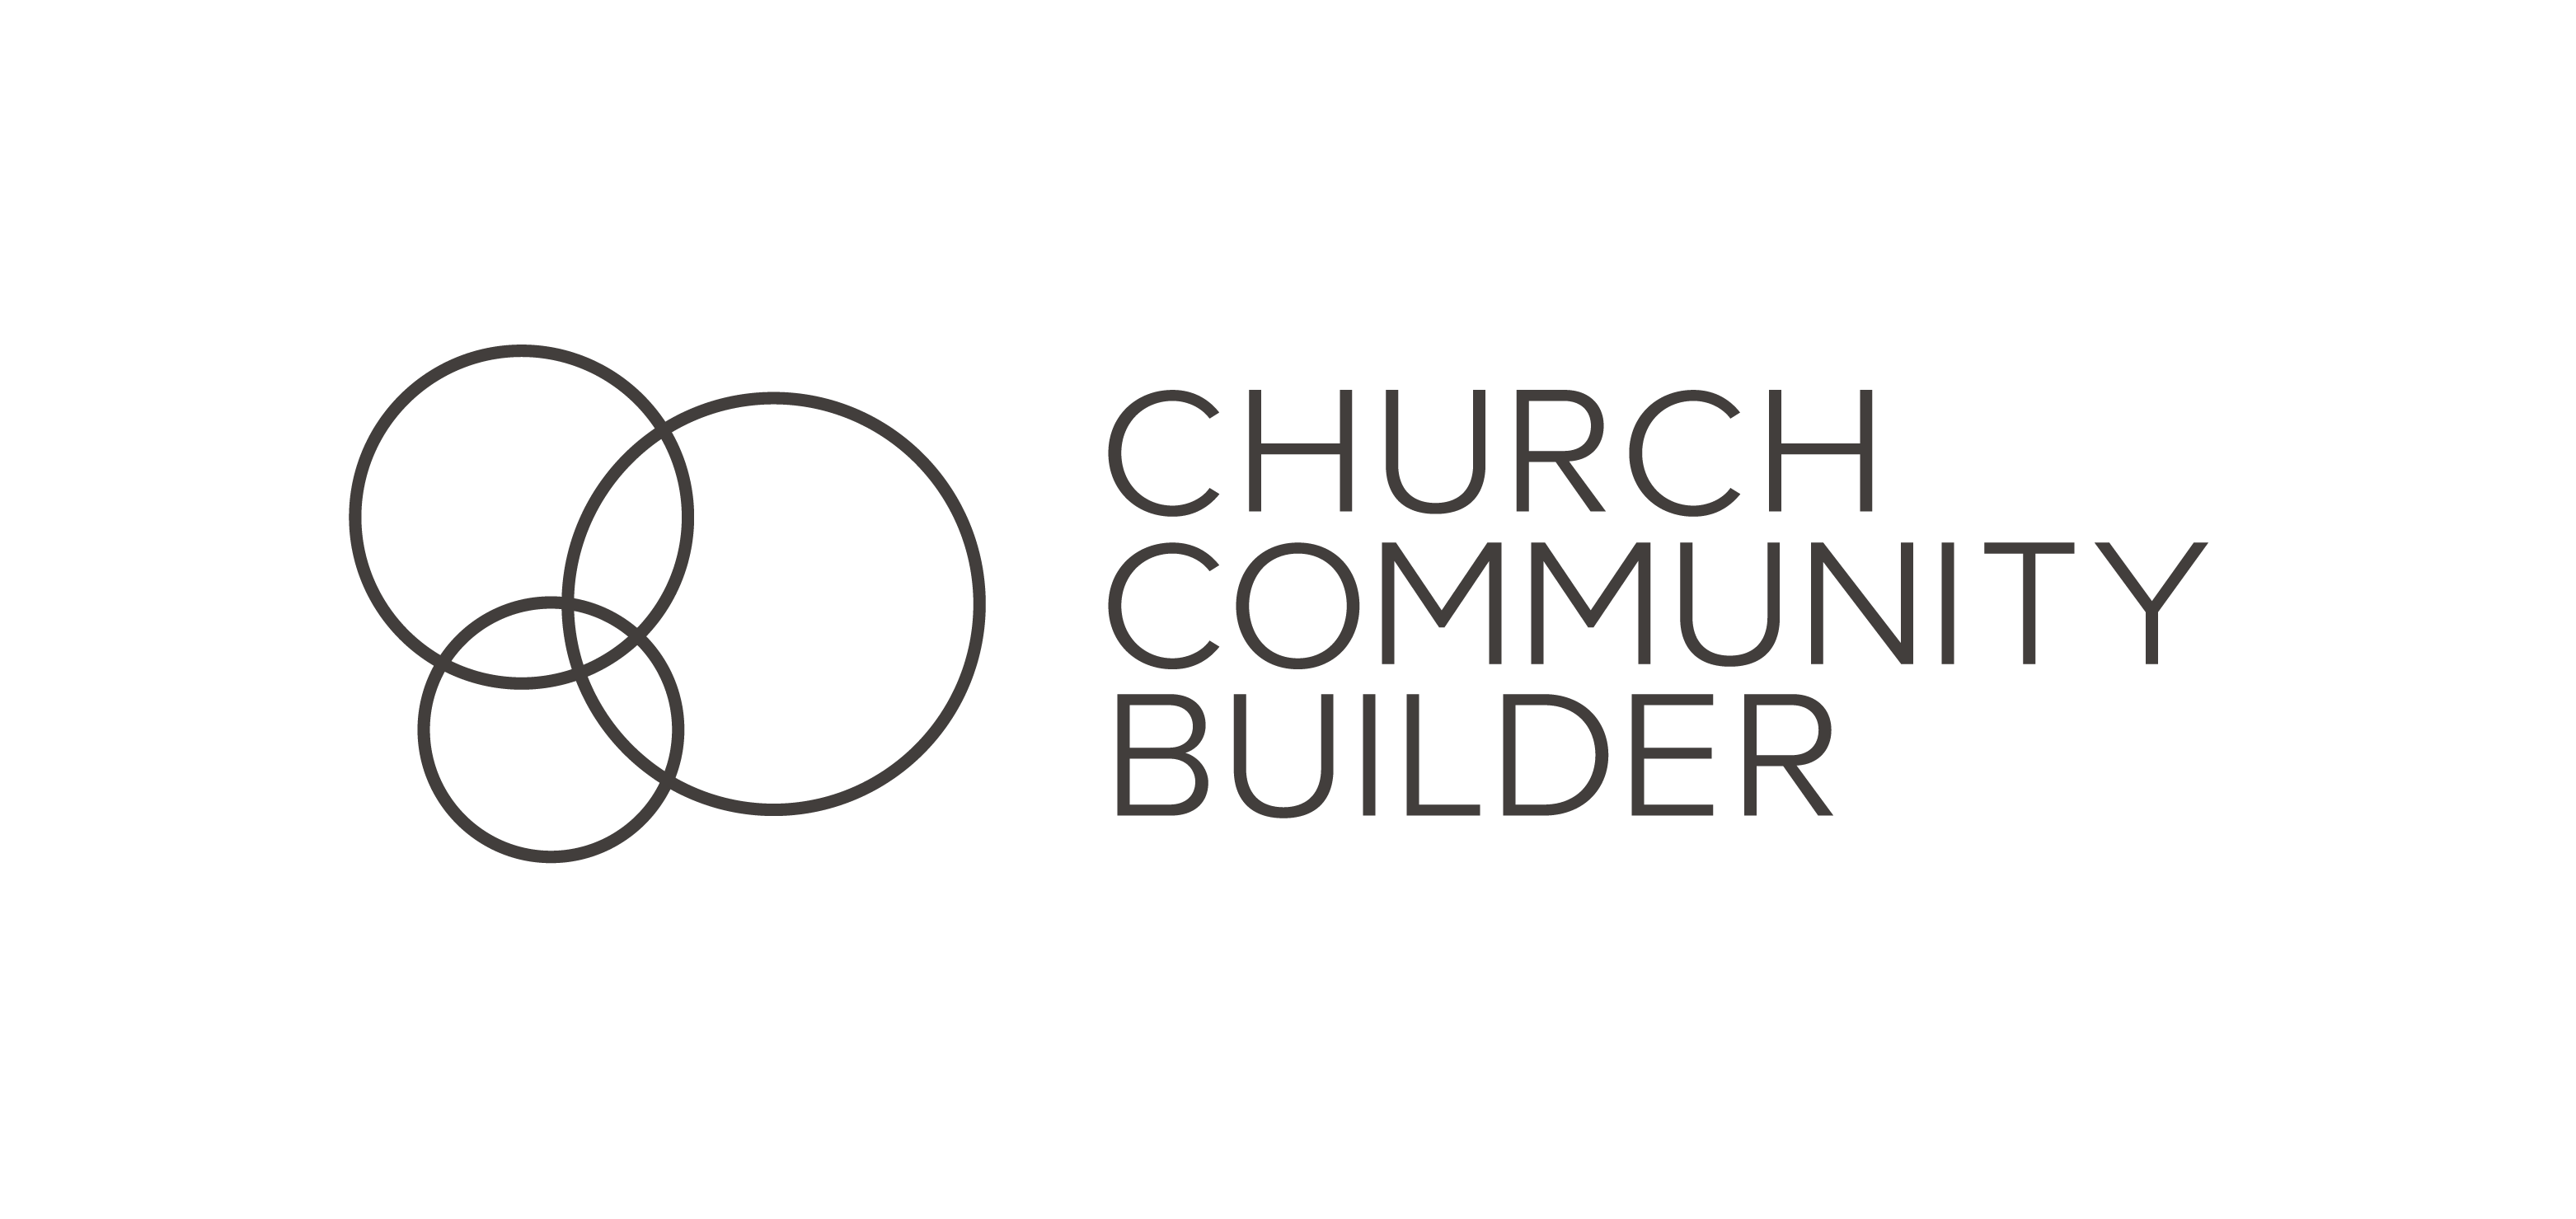 Church community png. Builder ccb gifts are